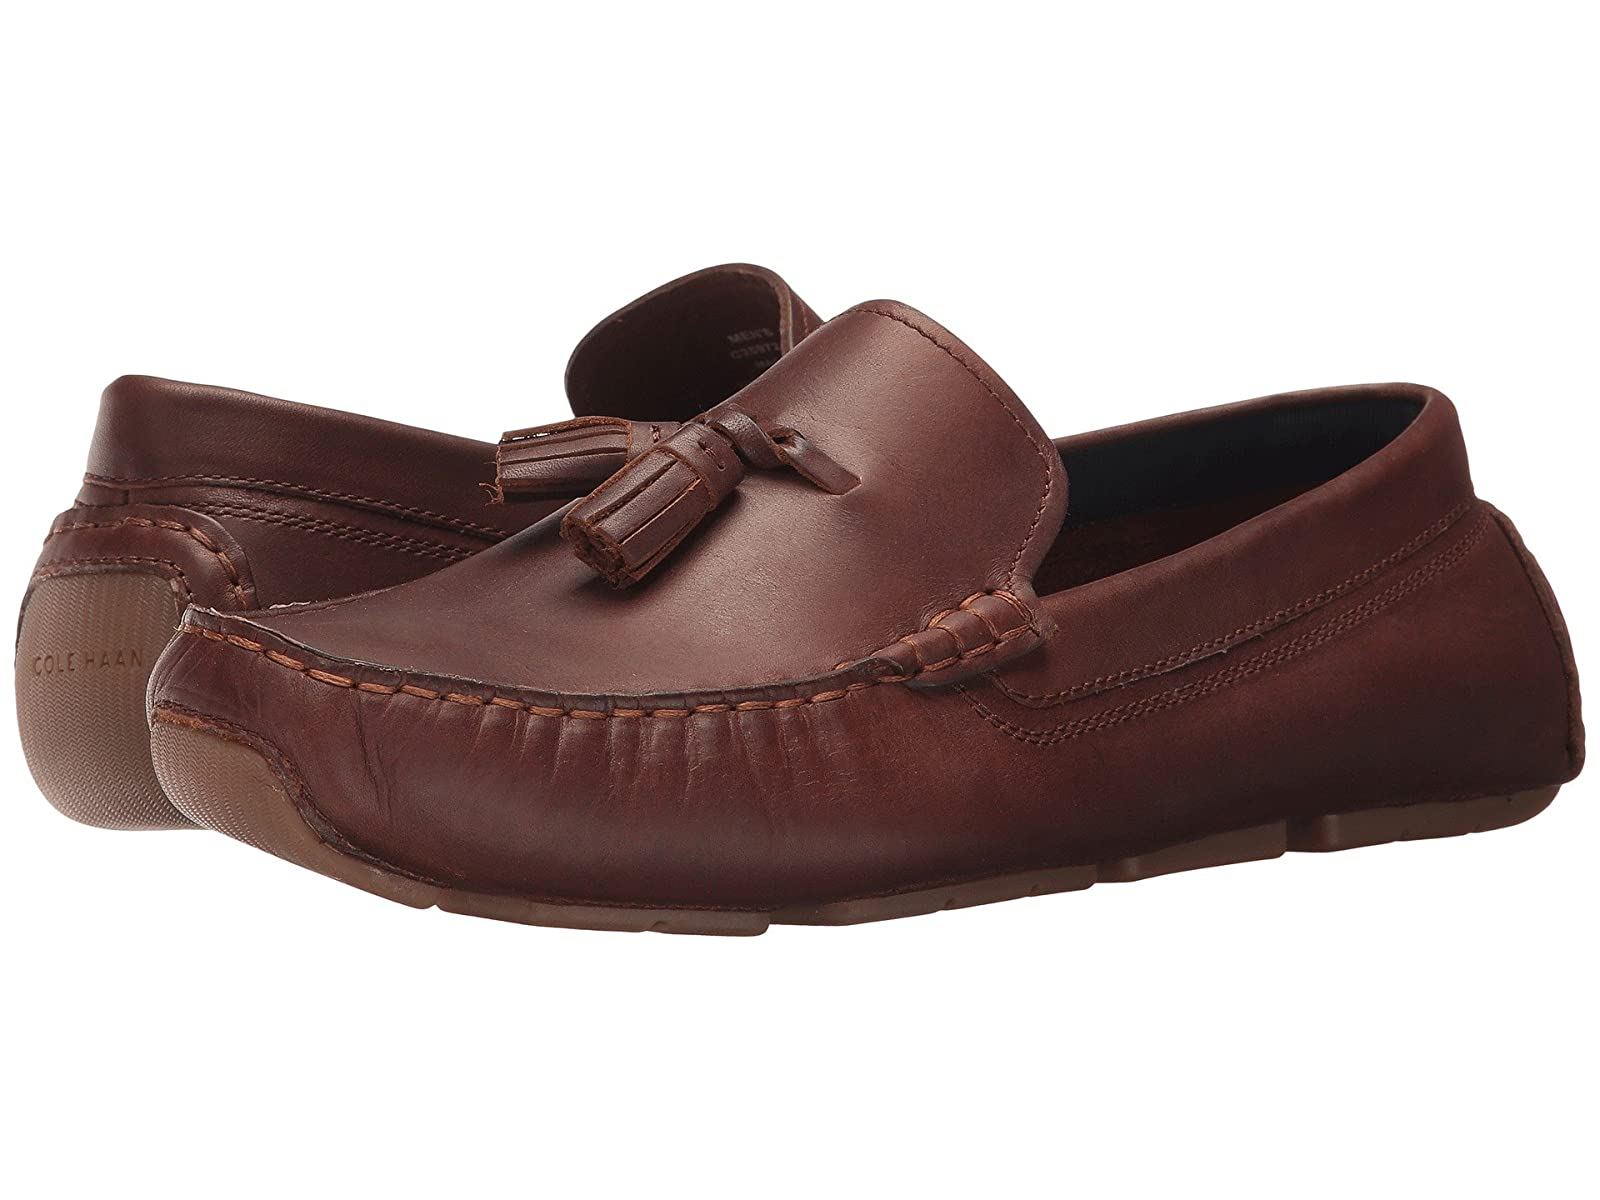 Cole Haan Kelson TasselCheap and distinctive eye-catching shoes